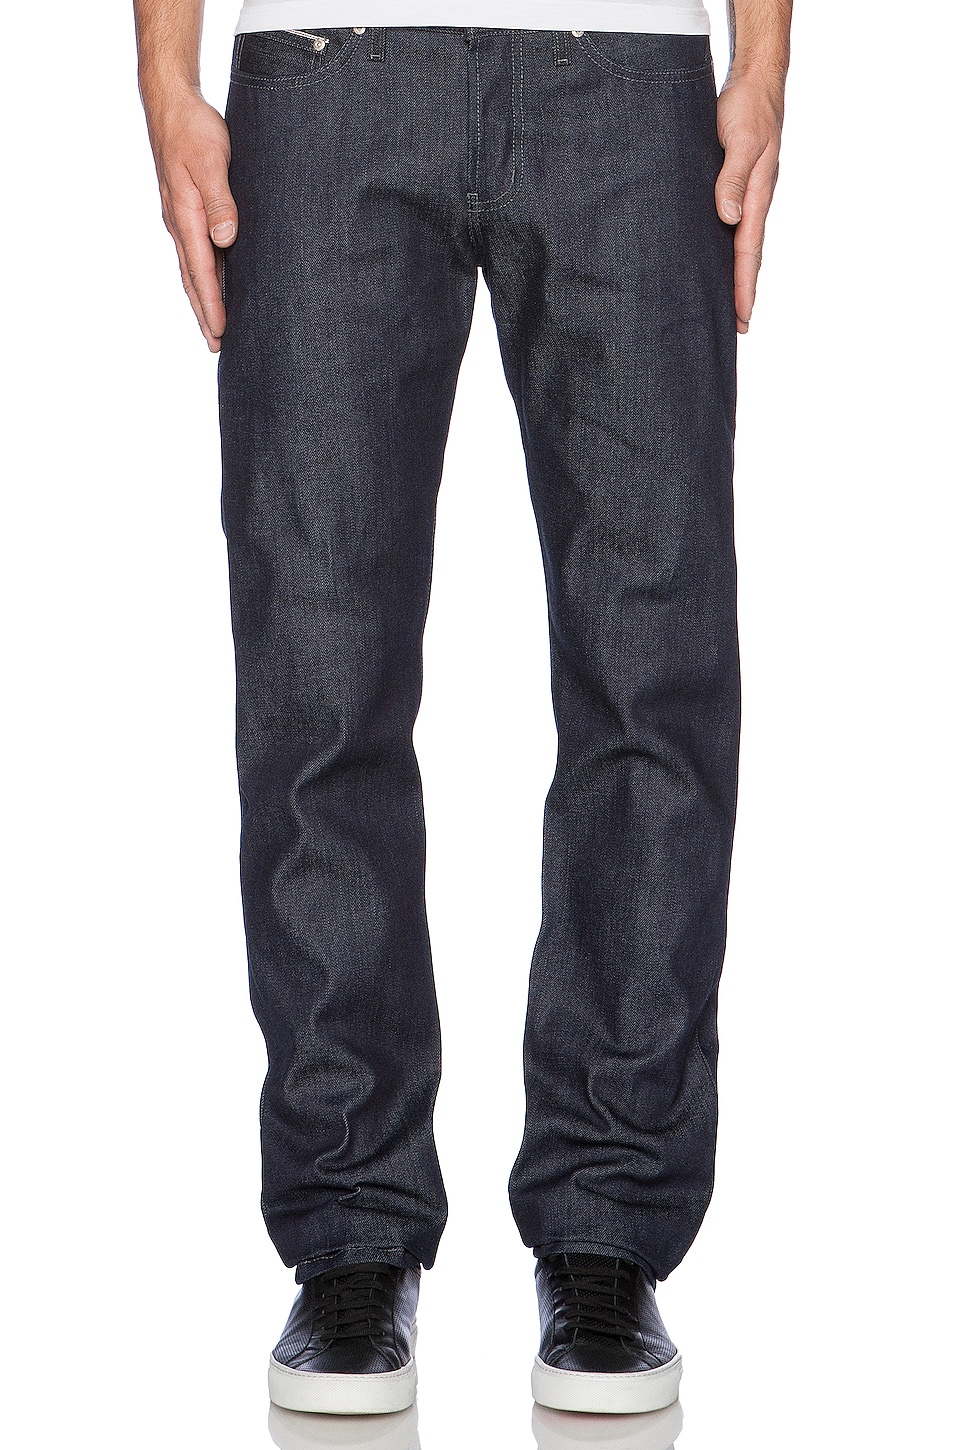 Naked & Famous Denim Weird Guy Selvedge in Indigo